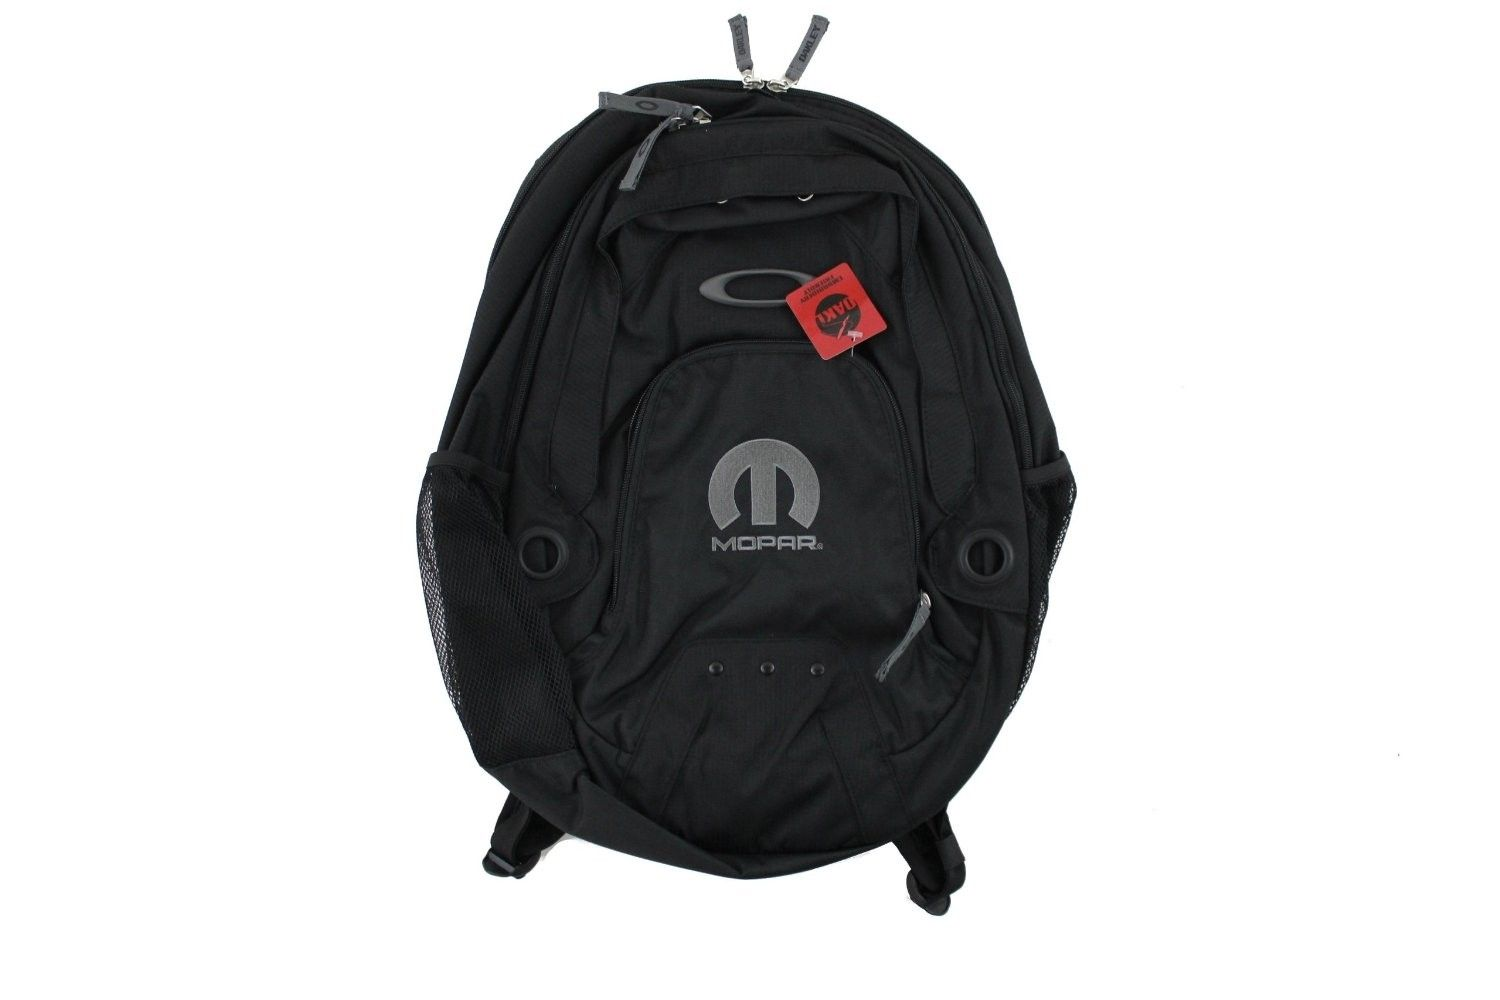 Mopar/Oakley backpack - 717EIIu1w0L._SL1500_.jpg